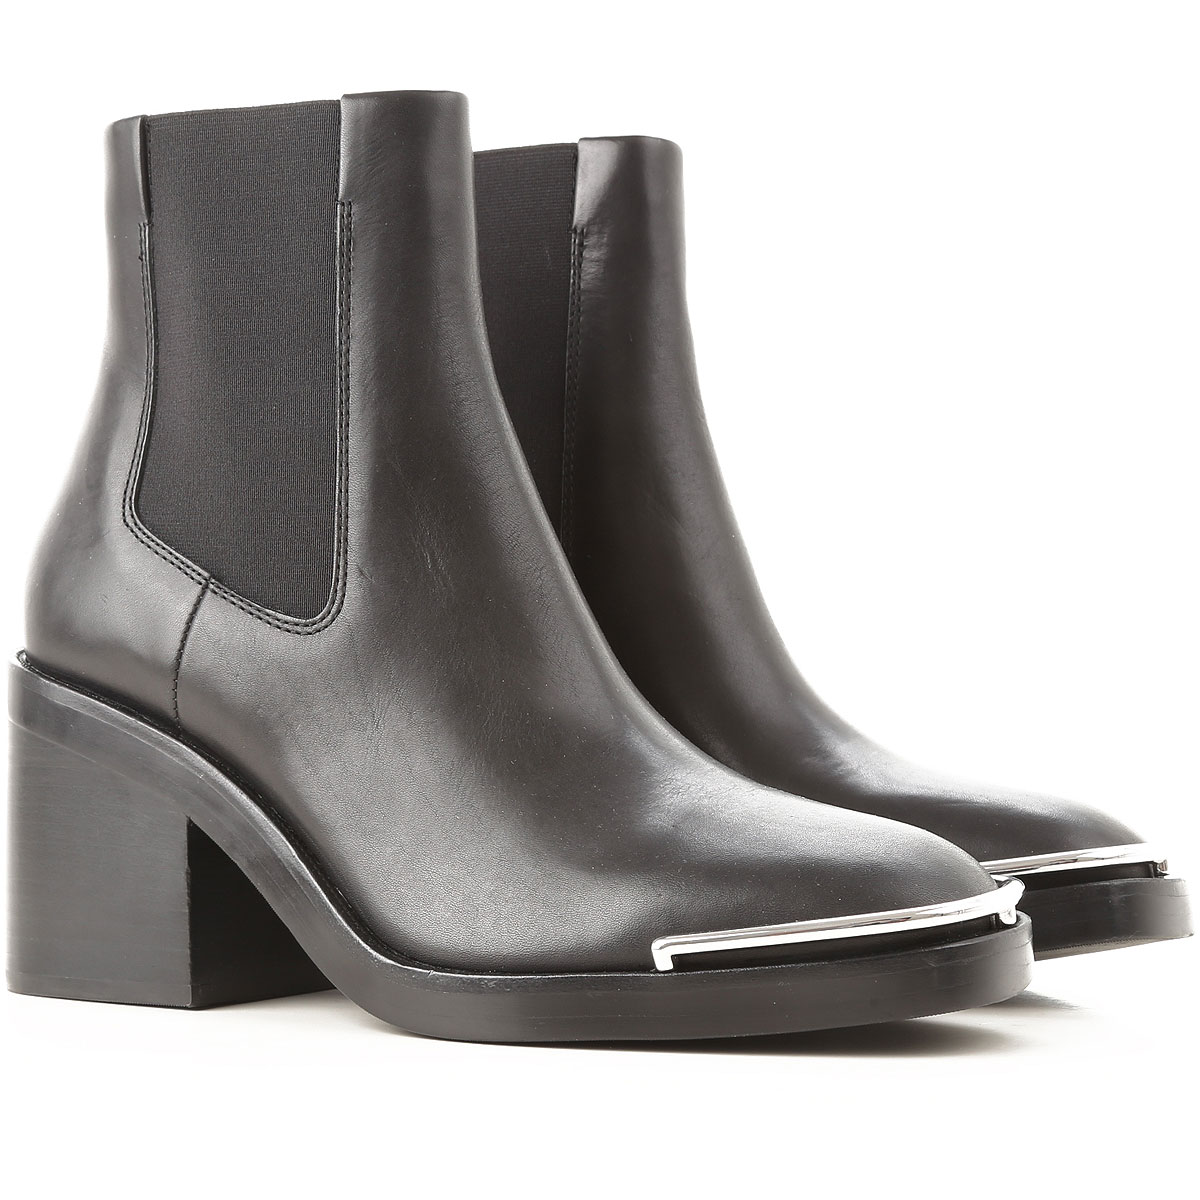 Image of Alexander Wang Boots for Women, Booties, Black, Leather, 2017, 10 5 6 6.5 7 8 8.5 9